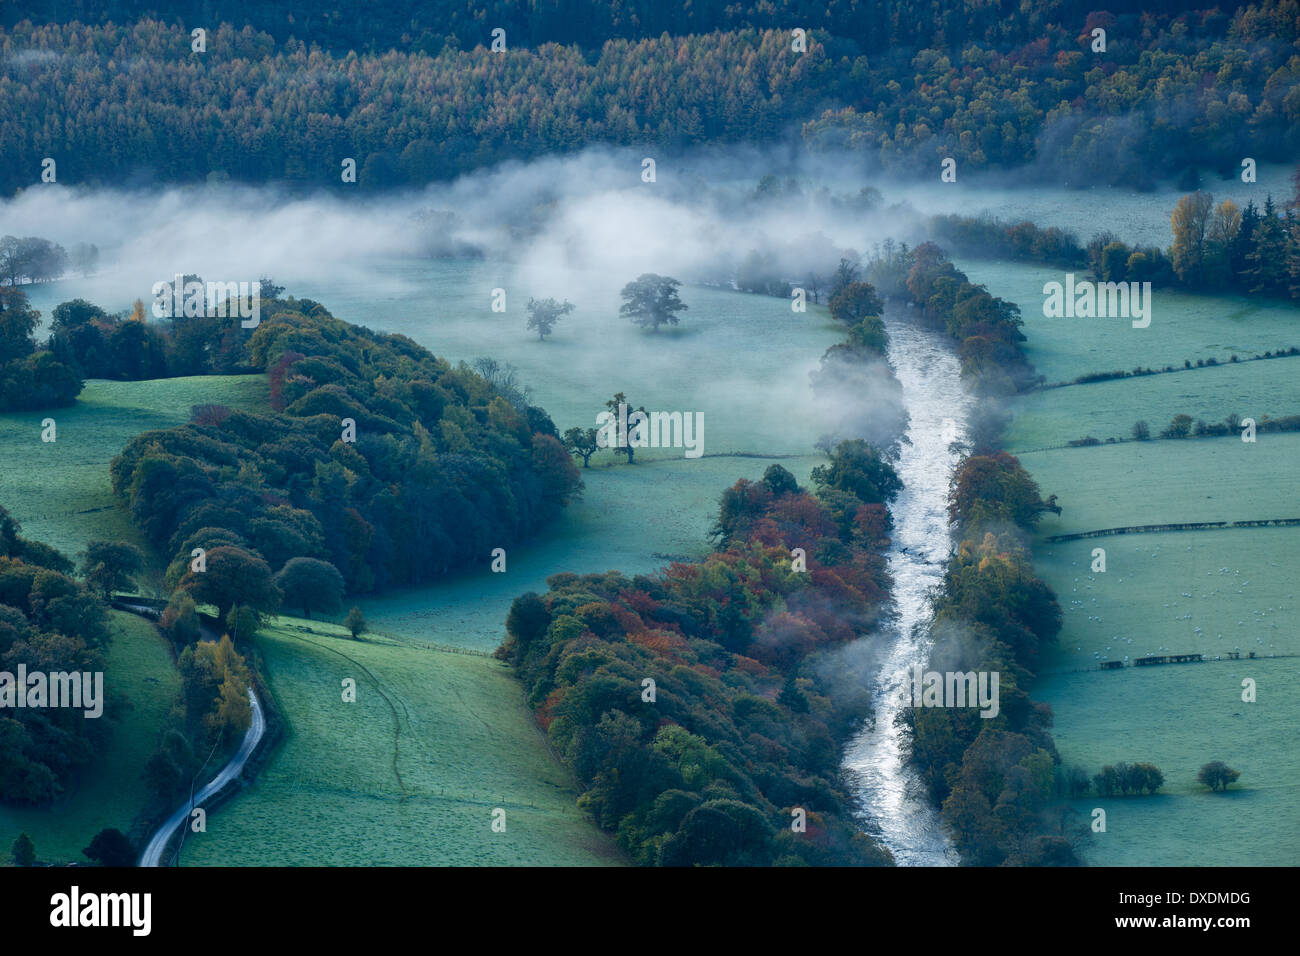 Autumn colours and mist in the Dee Valley (Dyffryn Dyfrdwy) near Llangollen, Denbighshire, Wales Stock Photo